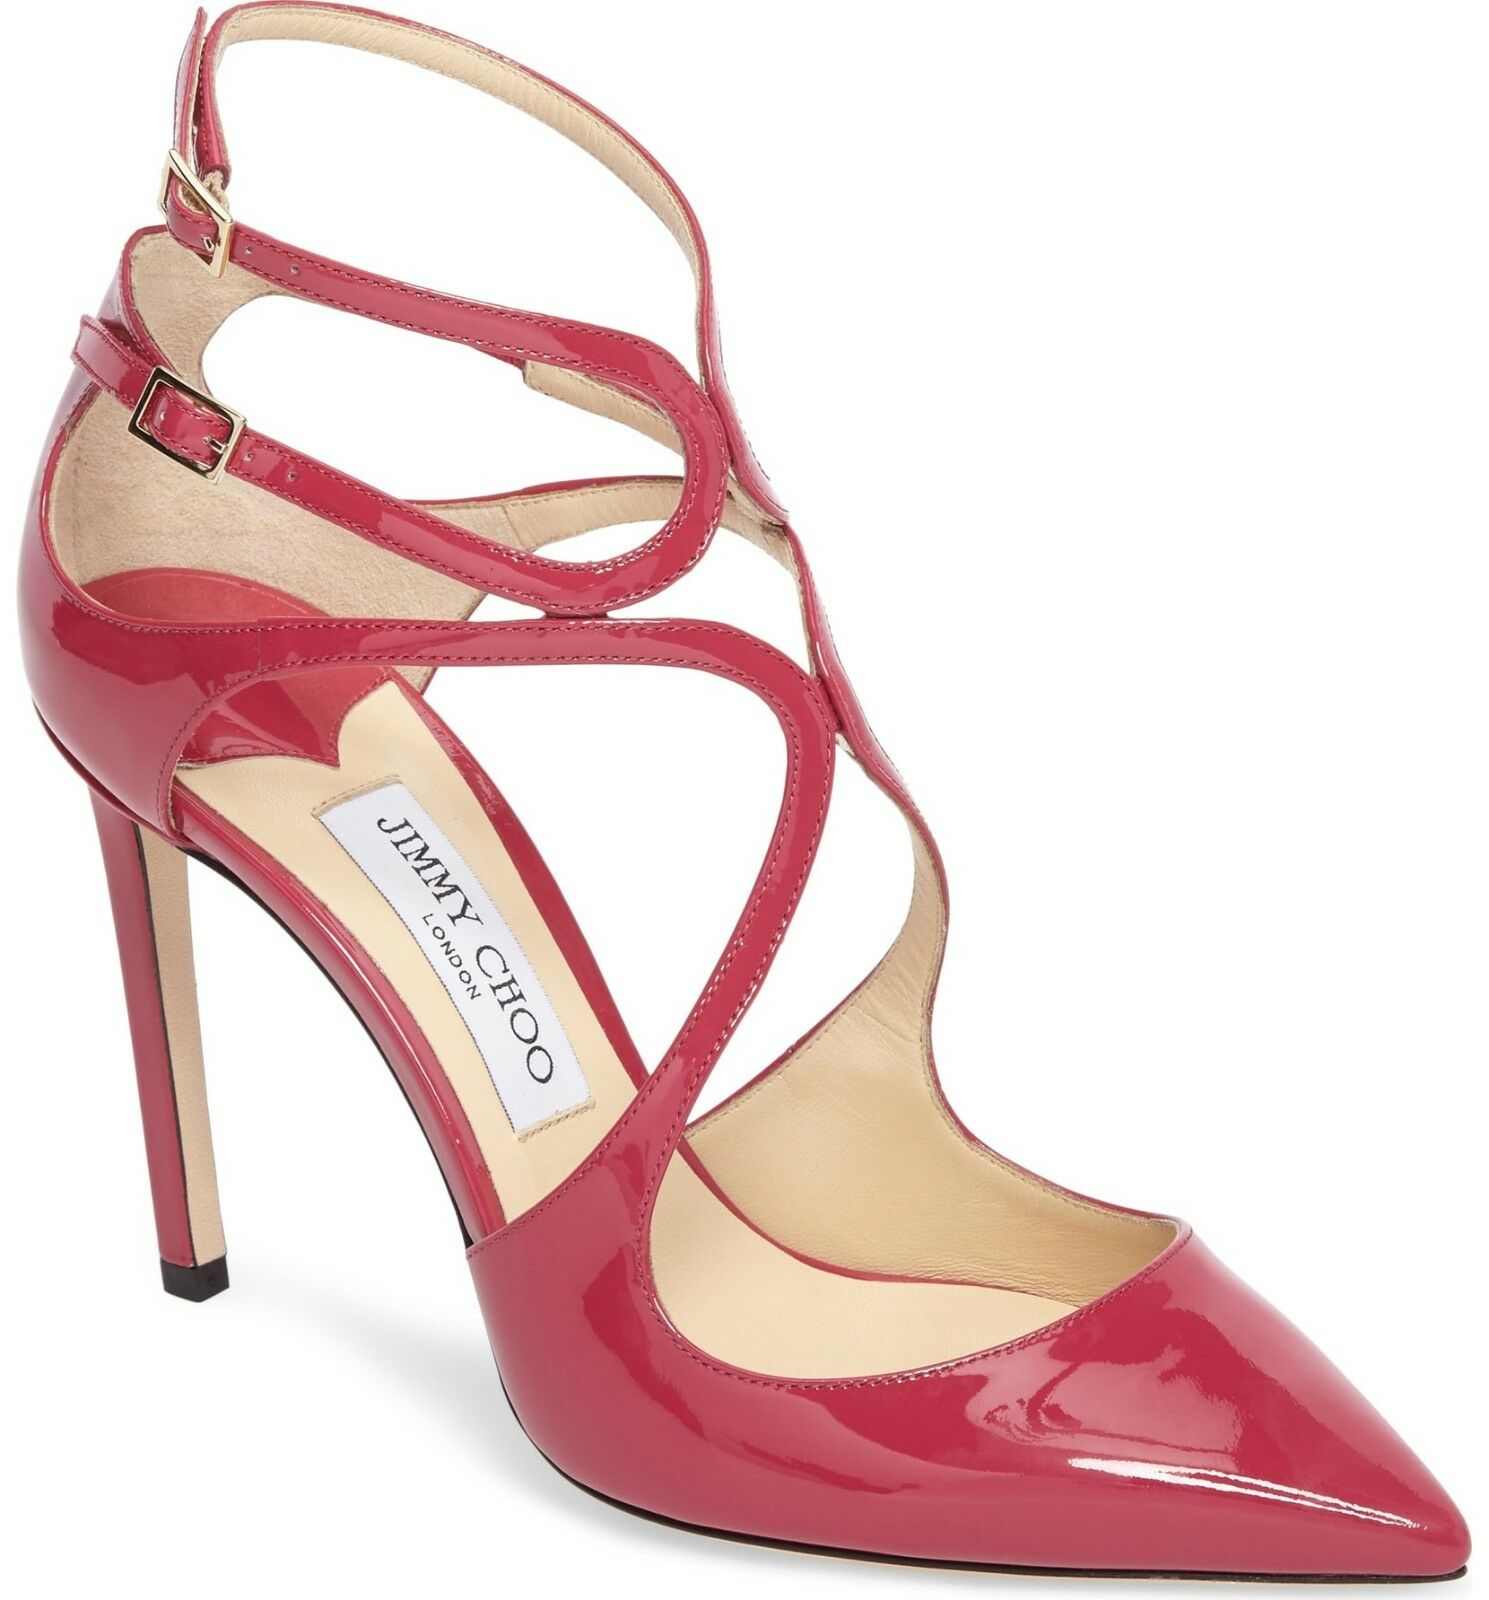 NIB  795 Jimmy Choo Lancer Strappy Pump Heel shoes CERISE PINK Patent 36 - 5.5